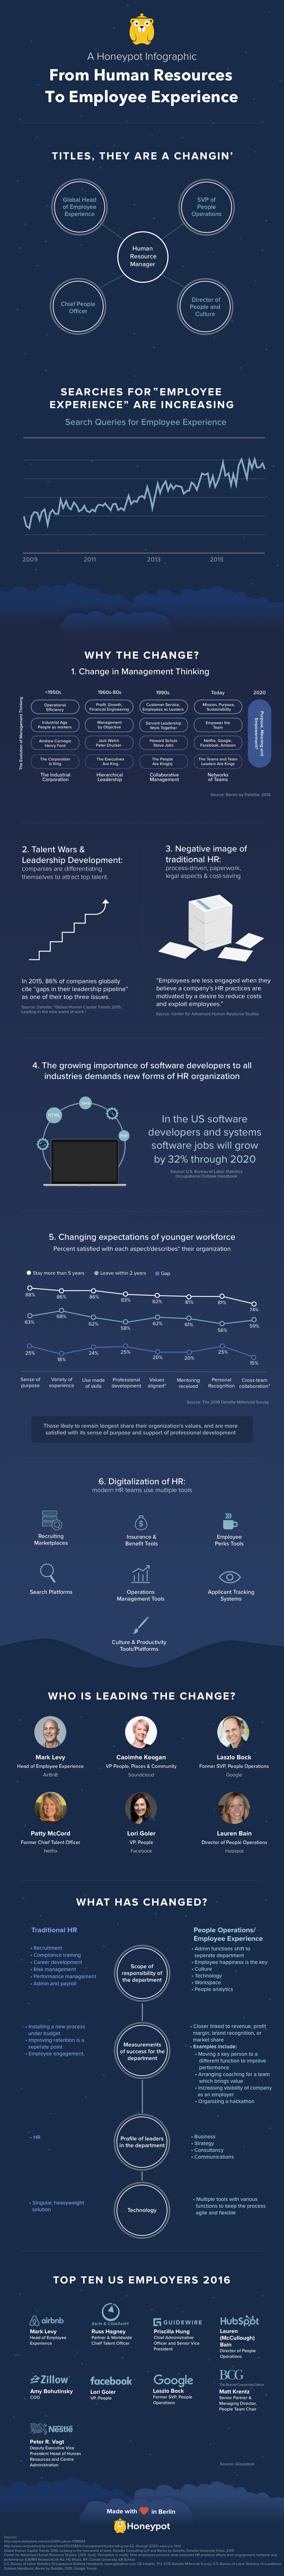 employee-experience-infographic